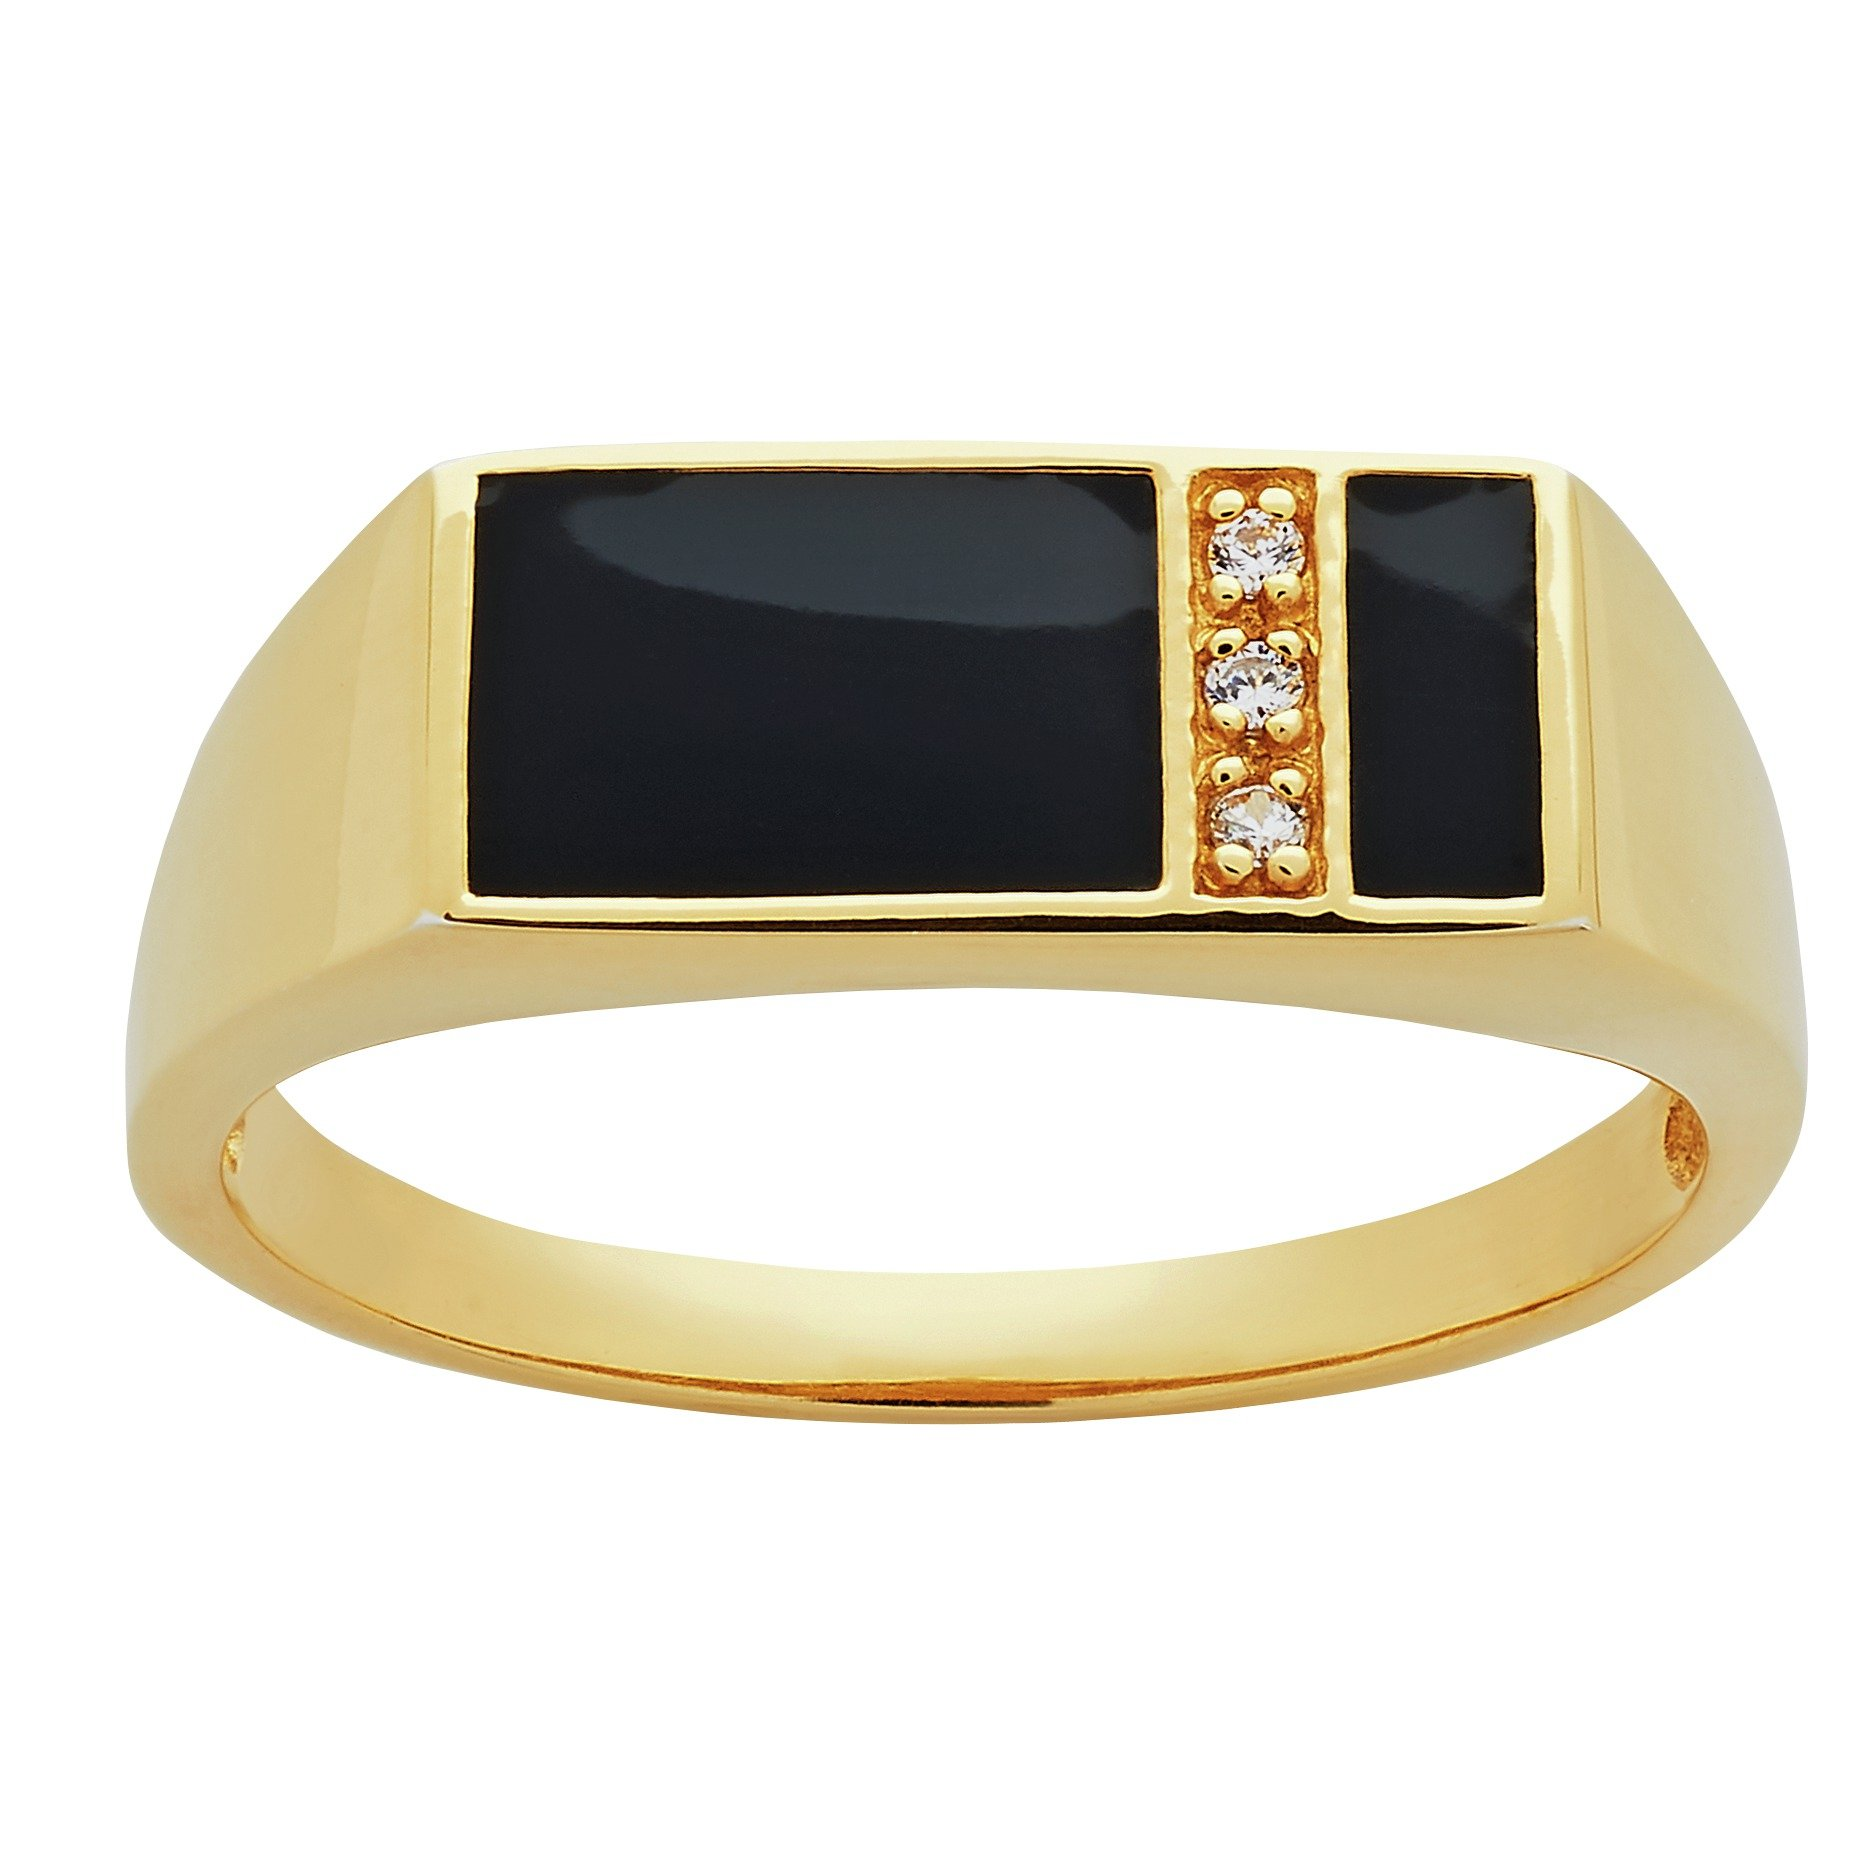 Image of Revere Men's 18ct Gold Plated Silver CZ Signet Ring